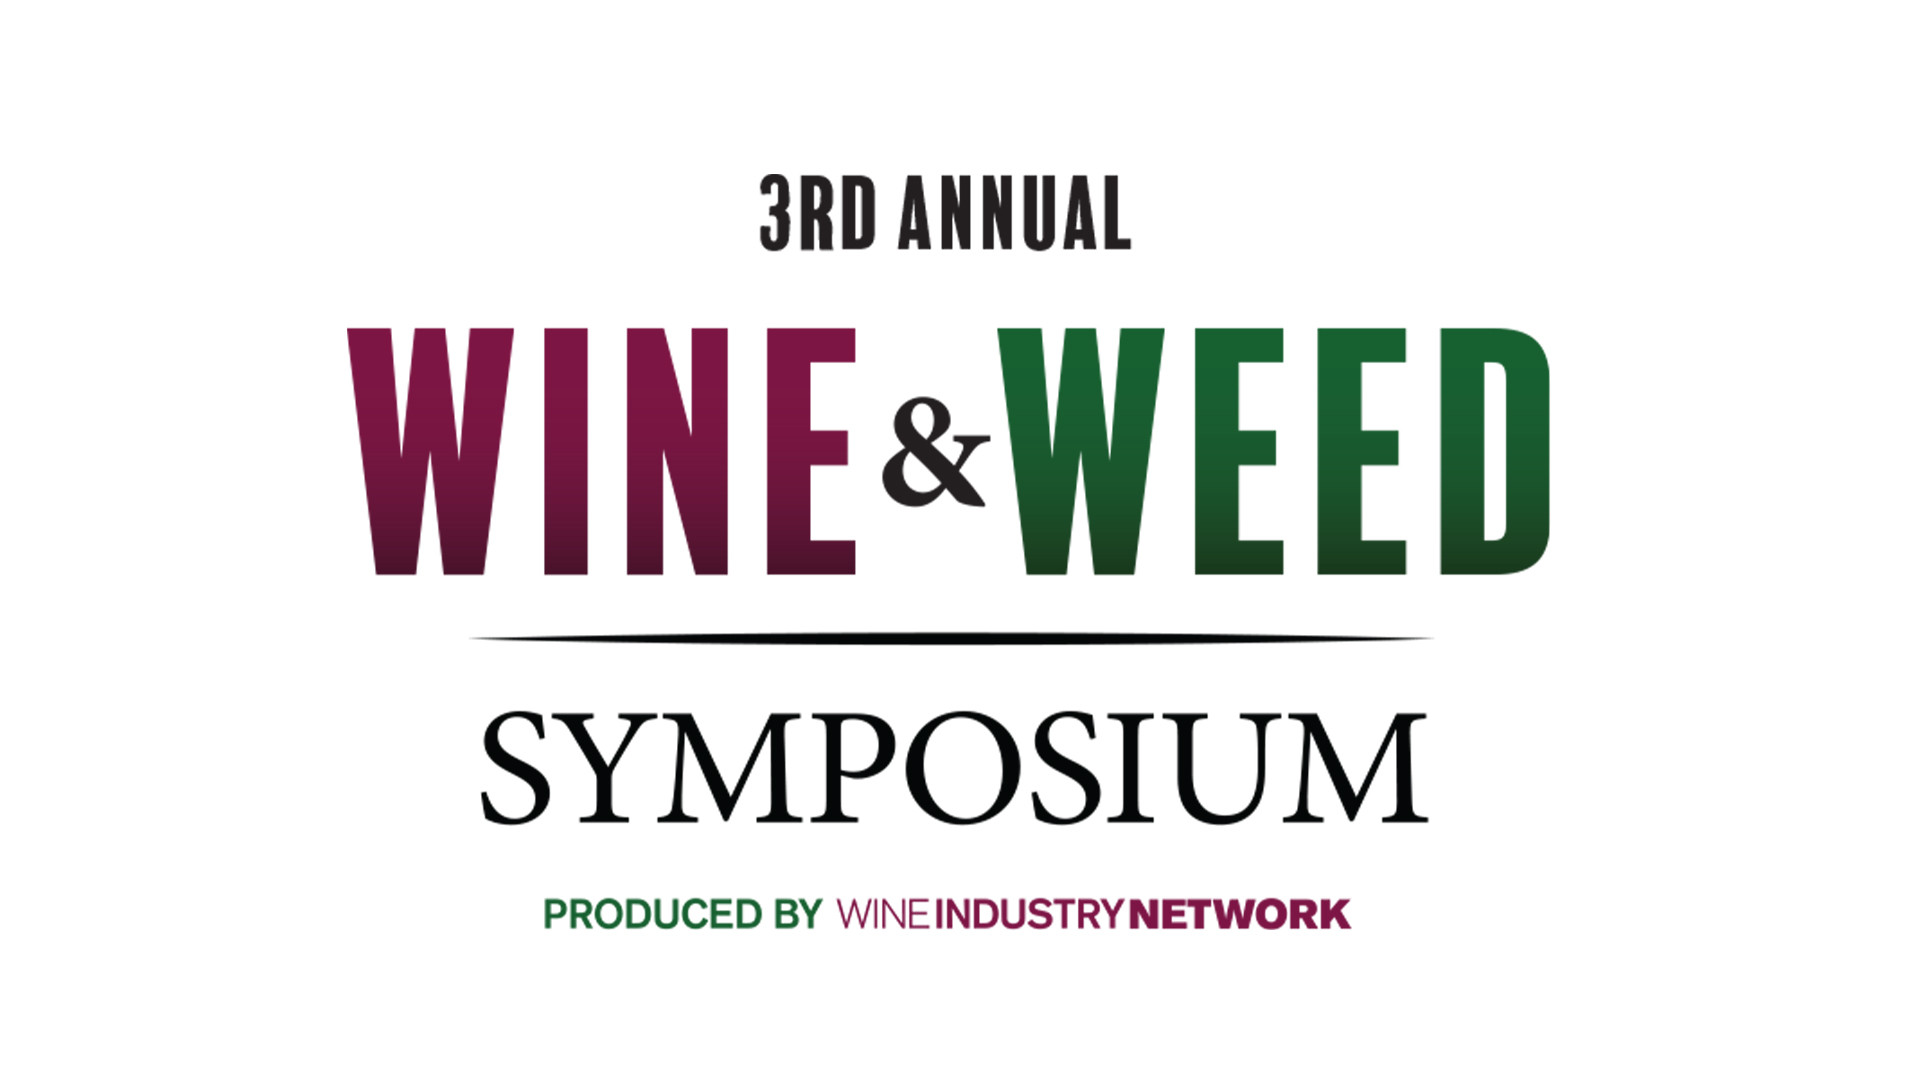 Wine & Weed Symposium Video 1920x1080.mp